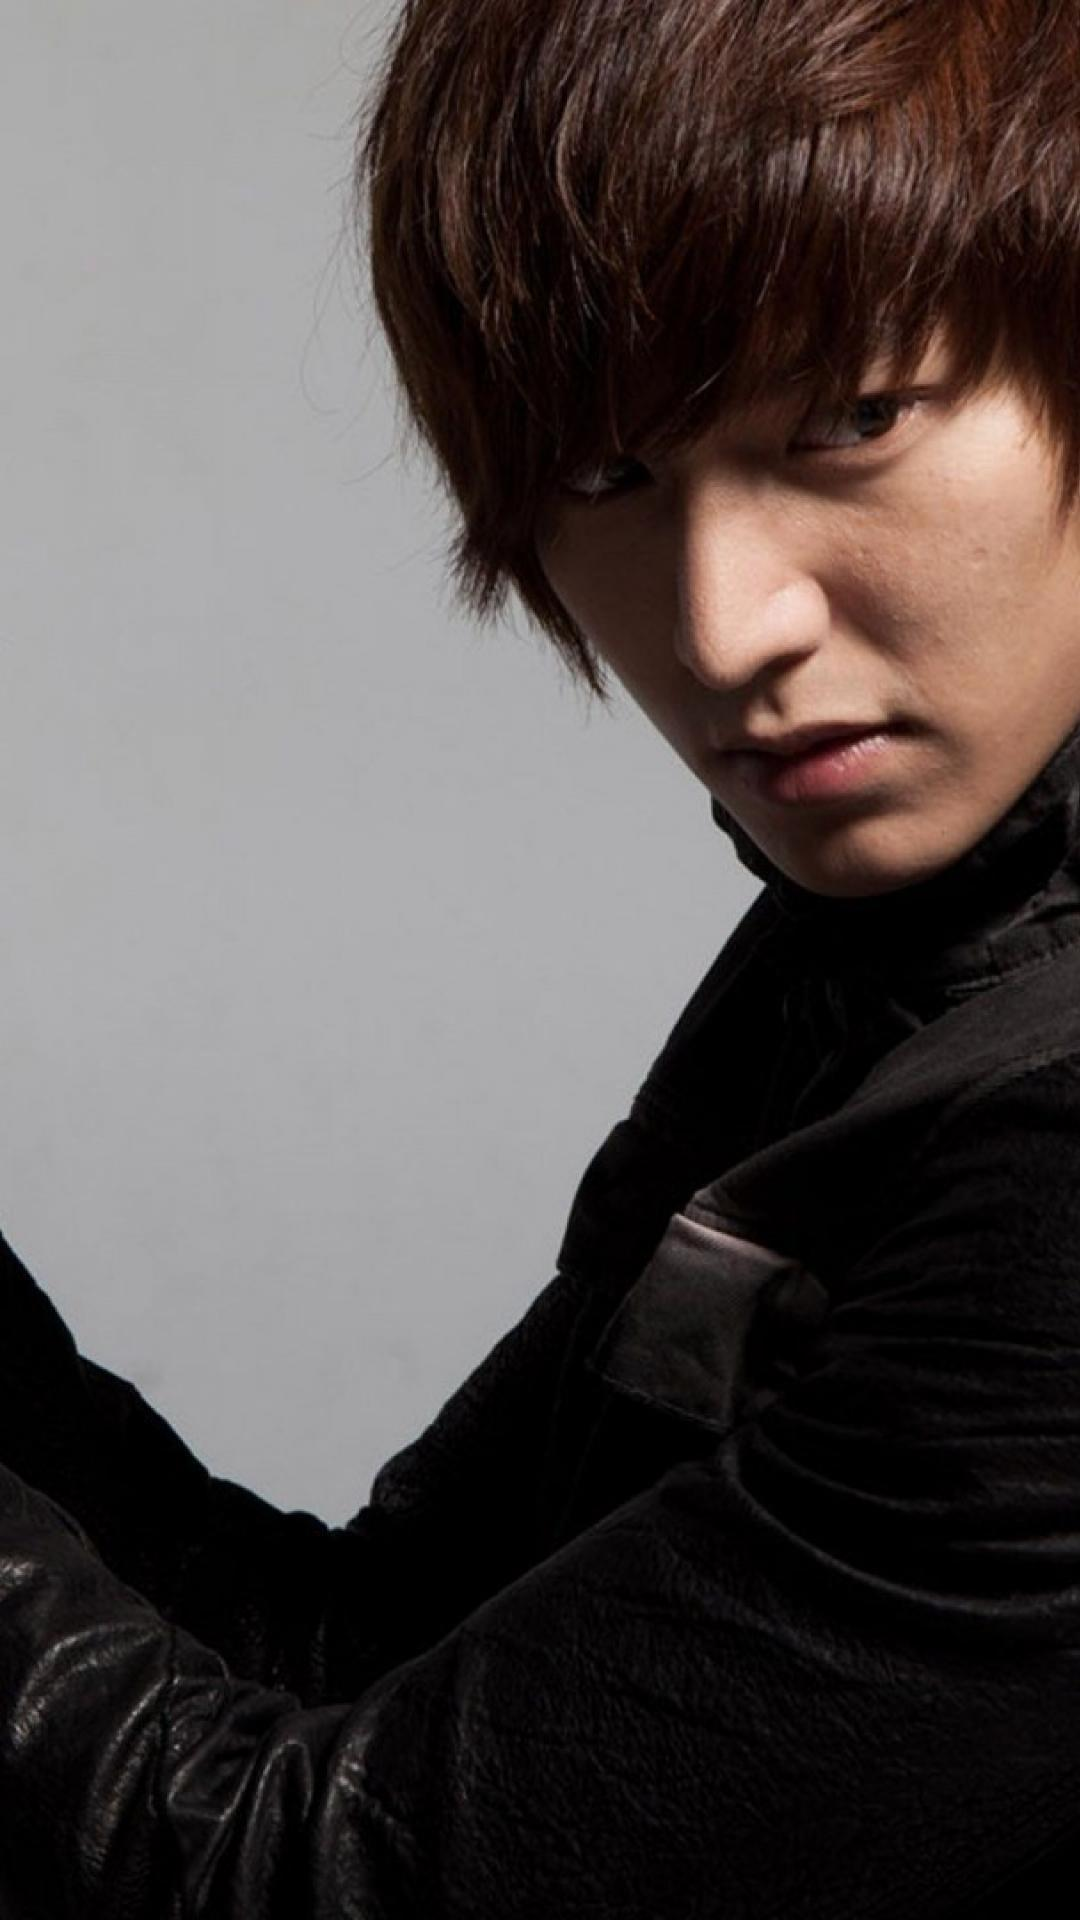 lee min ho android wallpapers wallpaper cave